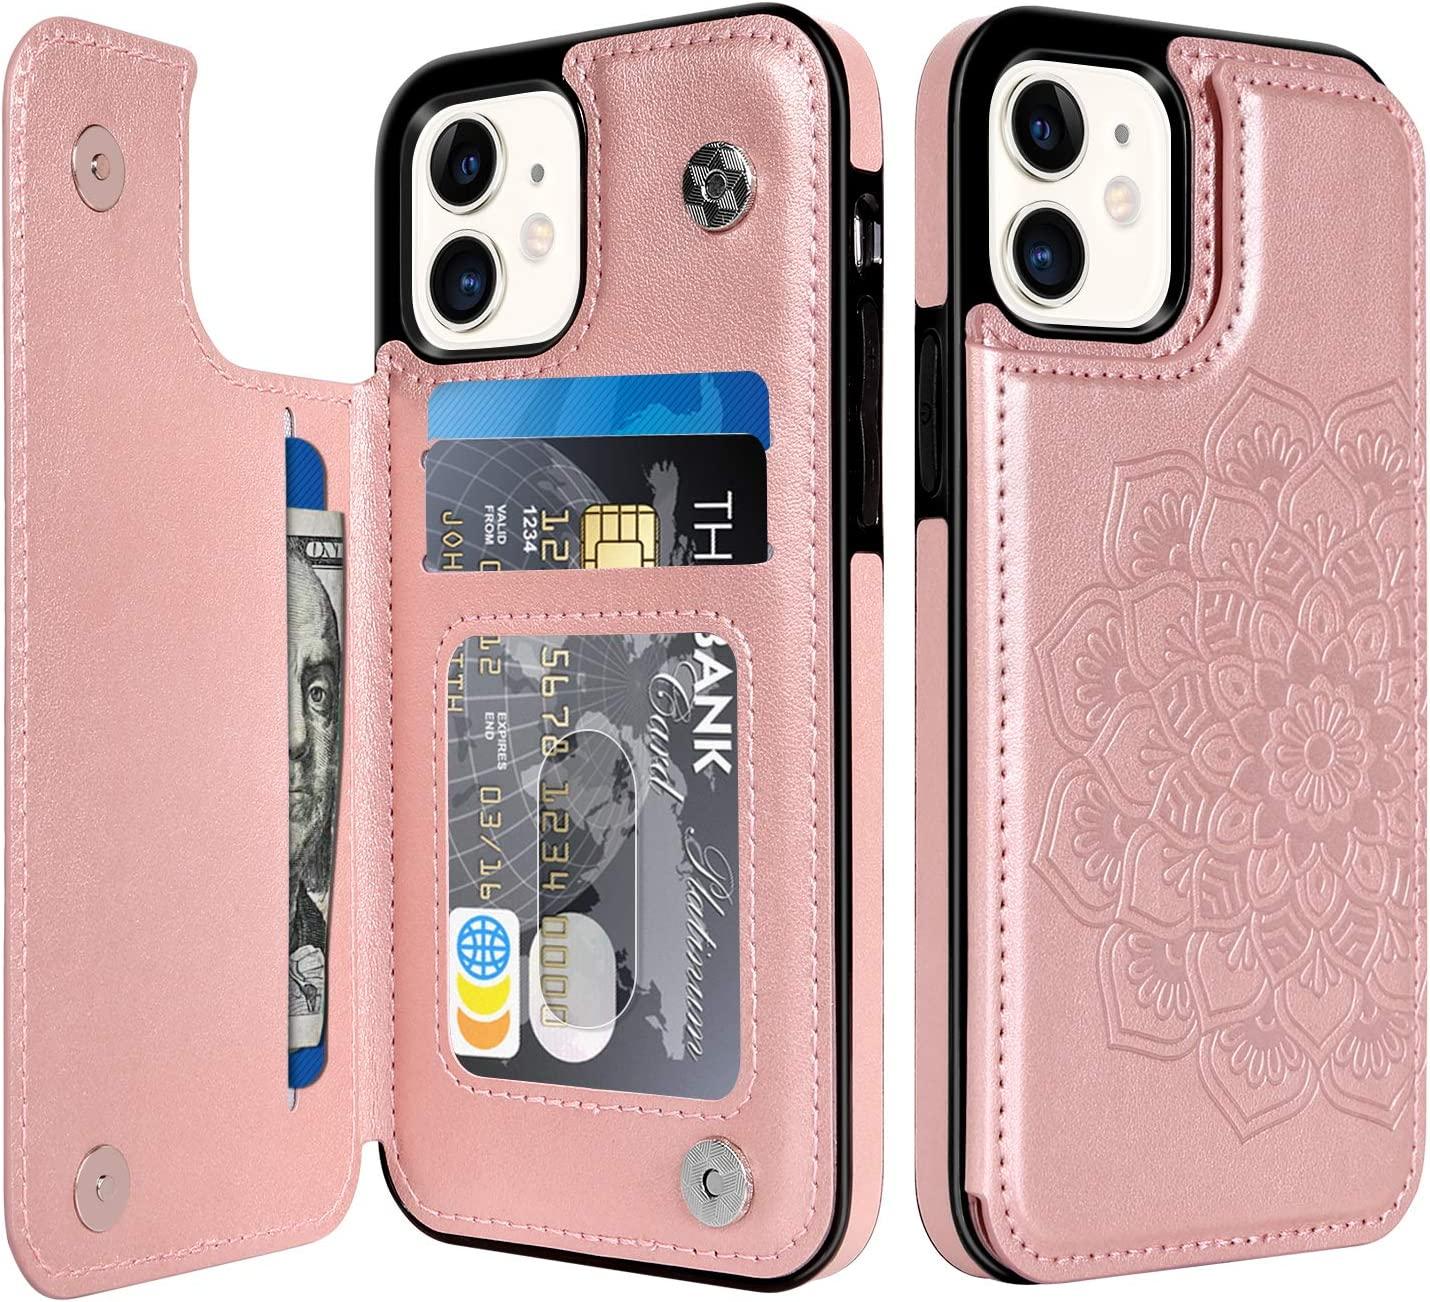 BENTOBEN iPhone 11 Wallet Case with Card Holder, PU Leather Heavy Duty Rugged Protective Cases with Card Slots Shockproof Flip Folio Phone Case Cover for Apple iPhone 11 6.1 Inch 2019 -Rose Gold